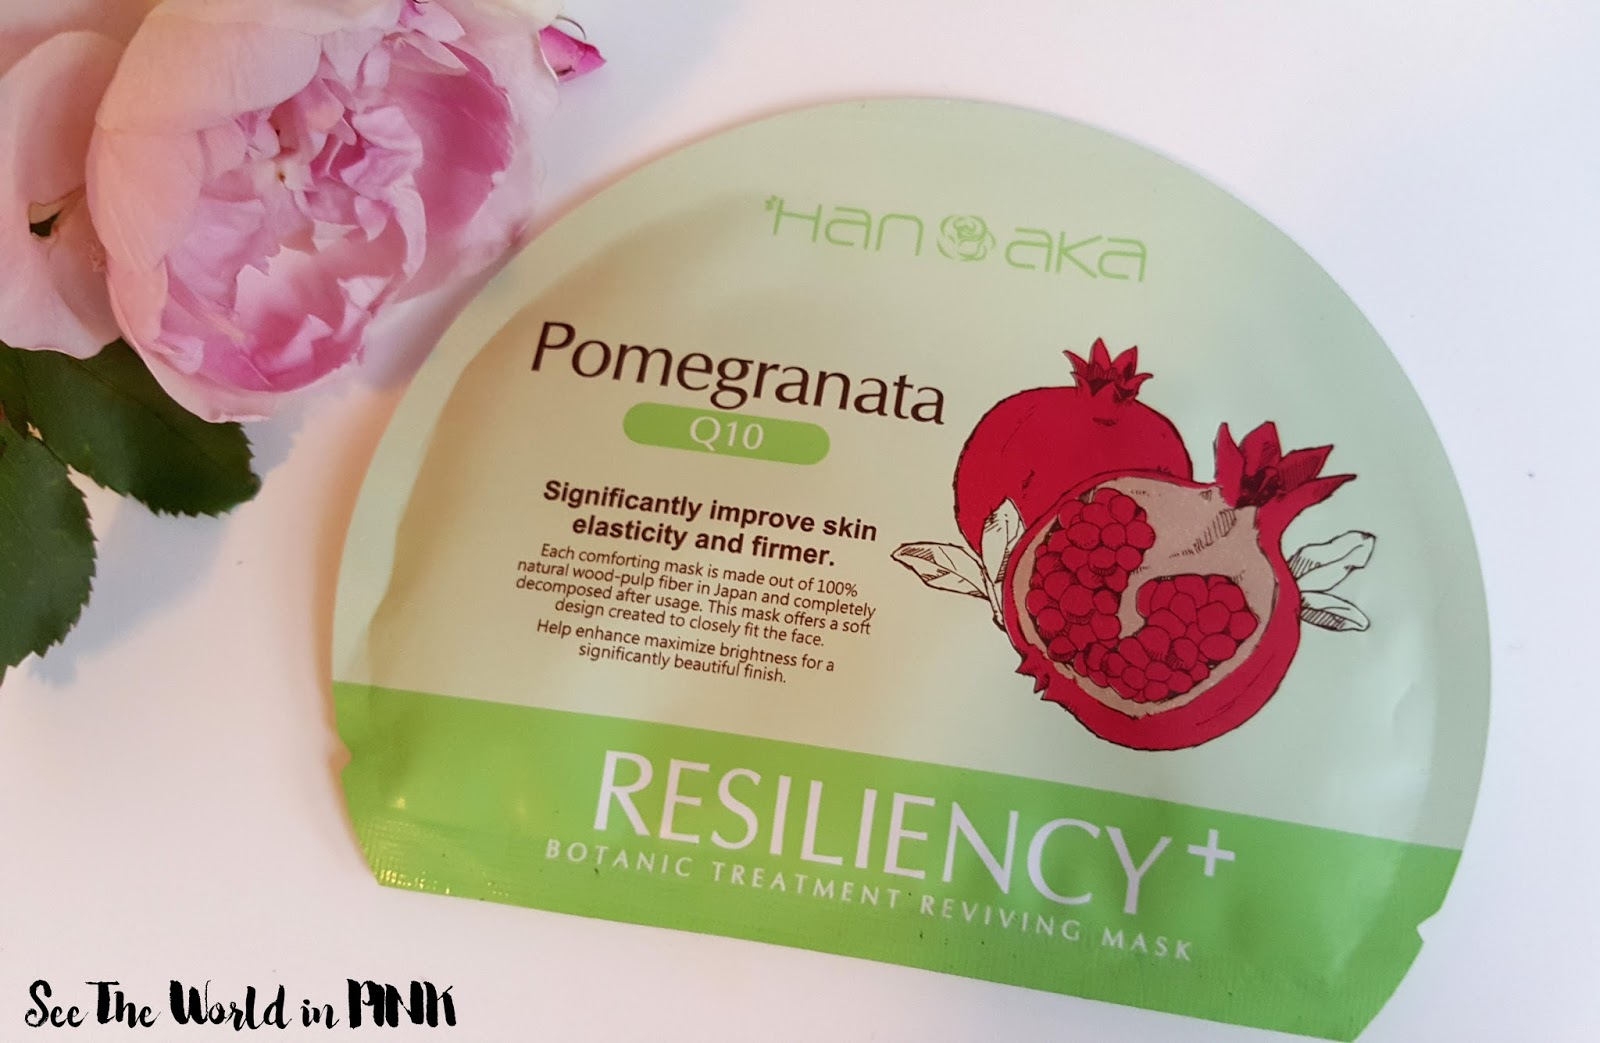 Hanaka Pomegranata + Q10 Resiliency Sheet Mask